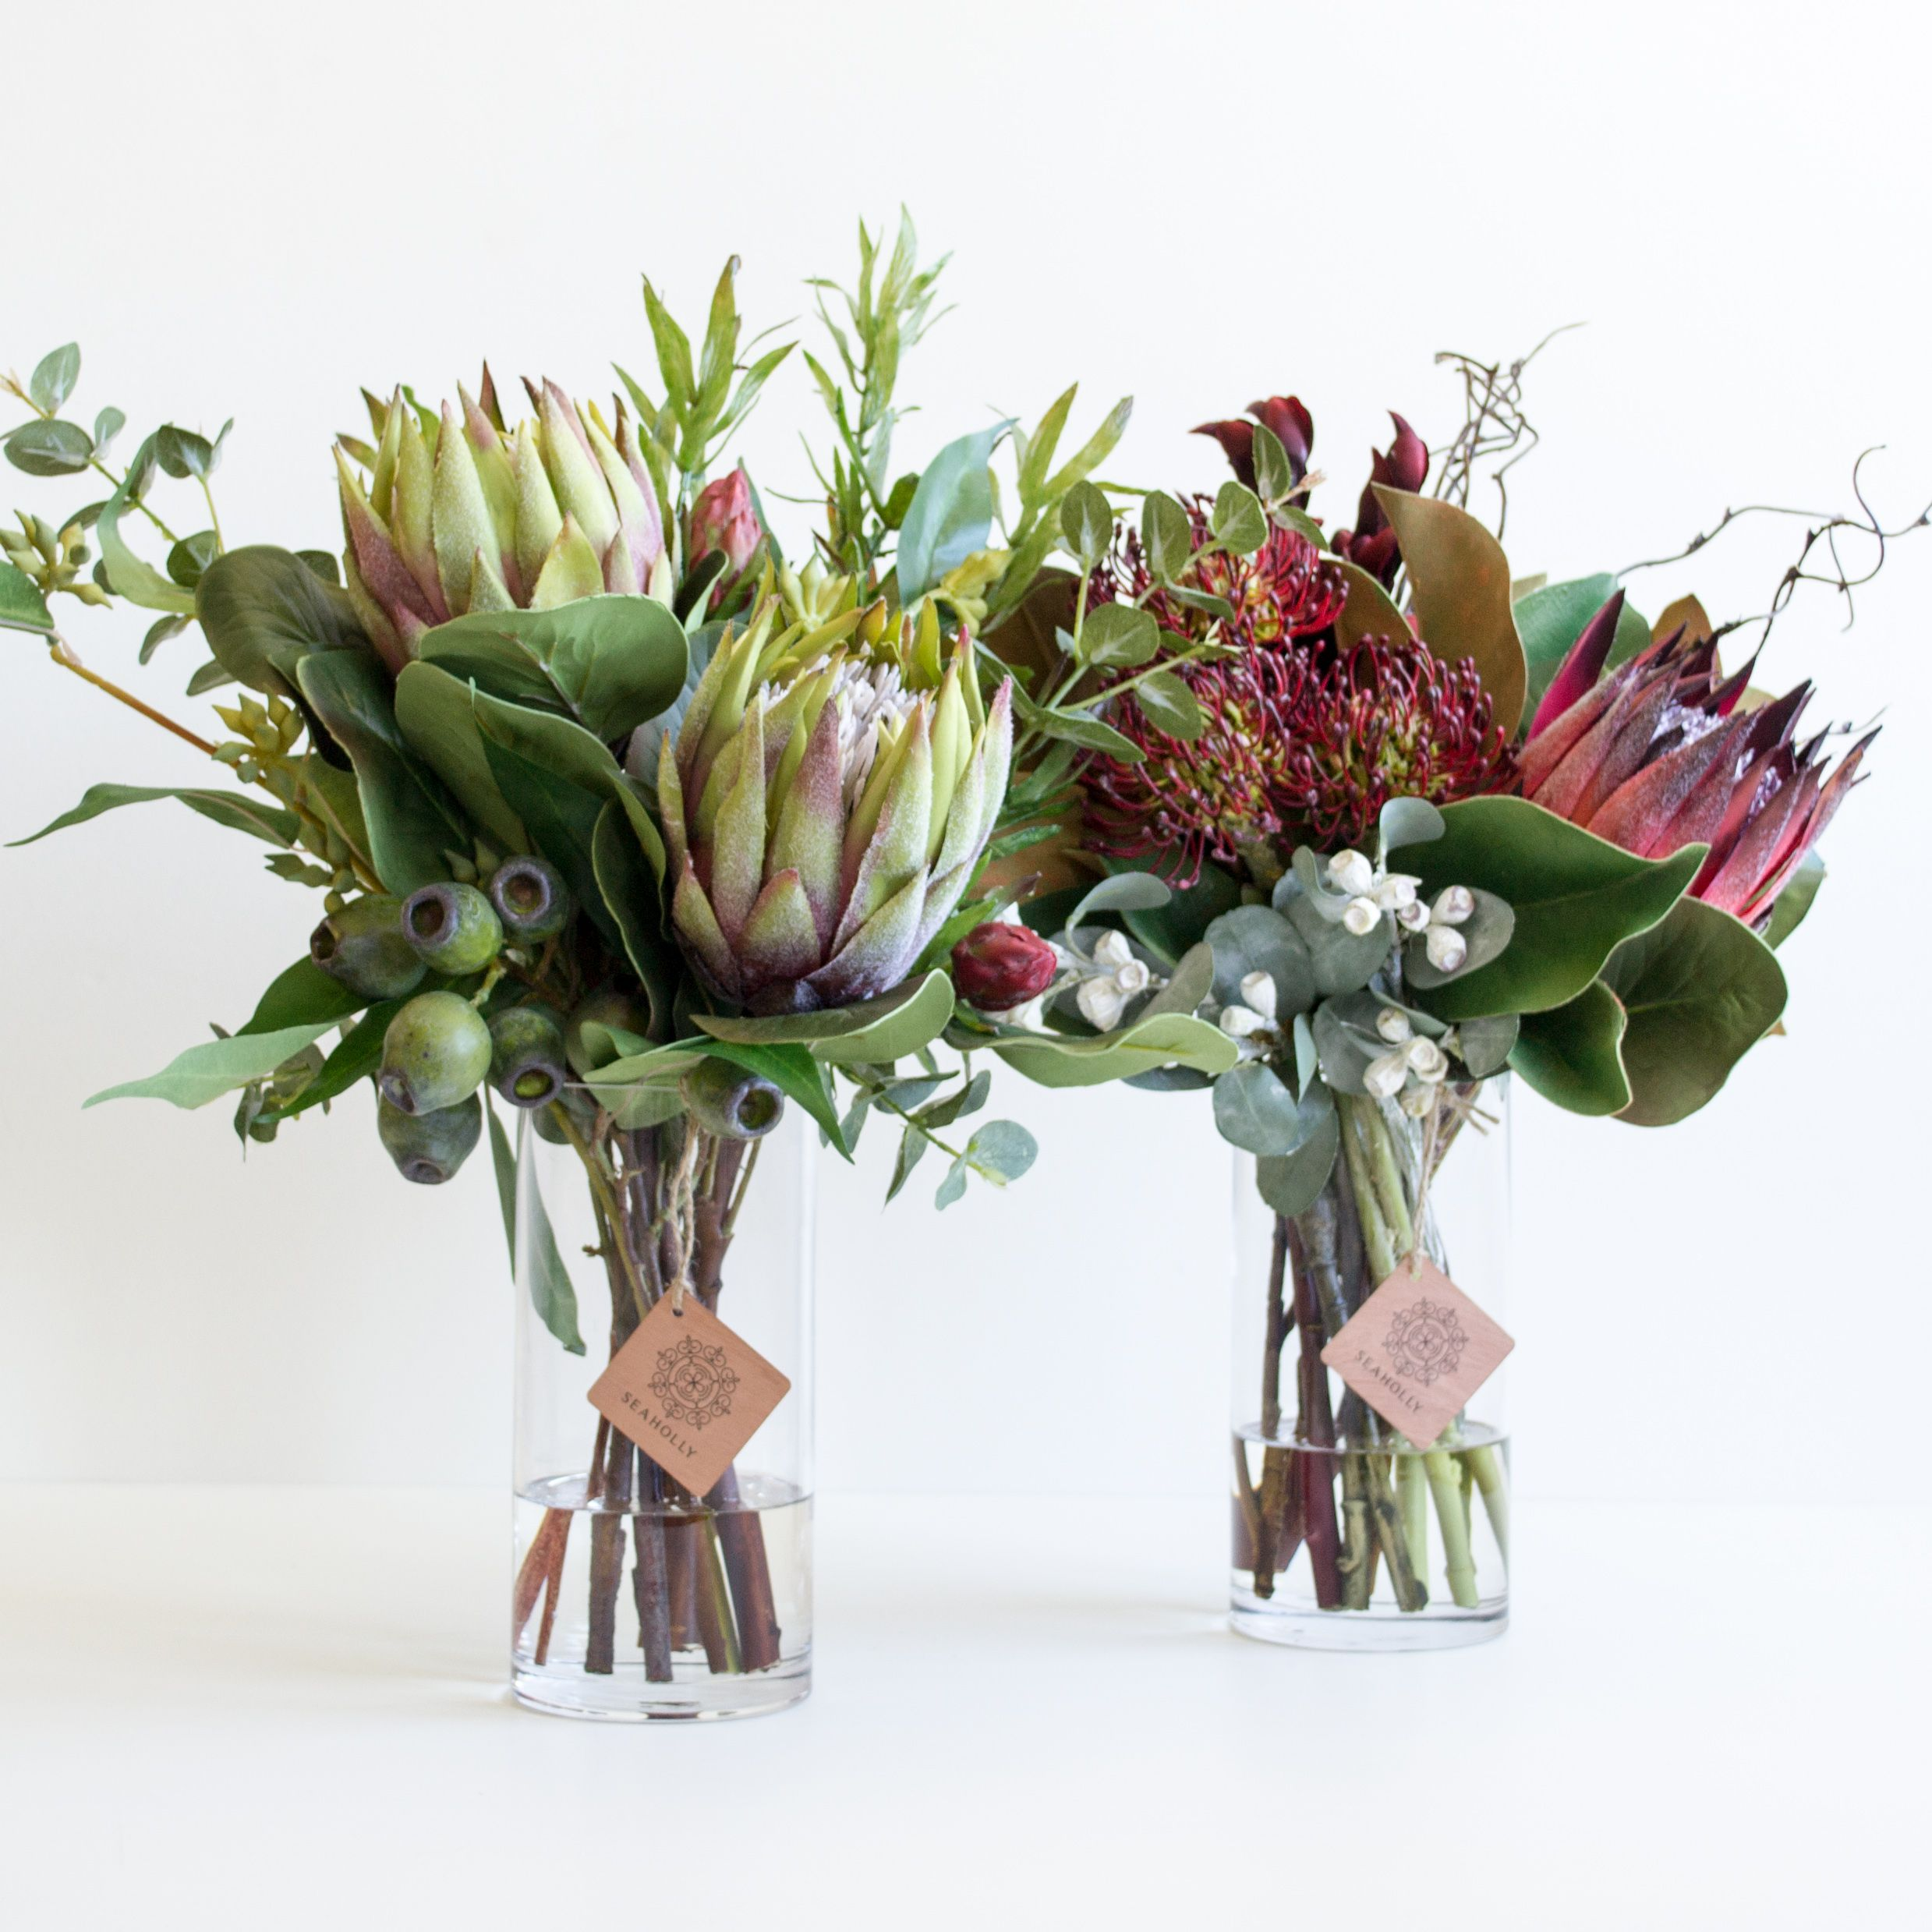 Artificial Australian Native Arrangements With Burgundy And Green Protea Tropical Flower Arrangements White Flower Arrangements Artificial Flower Arrangements